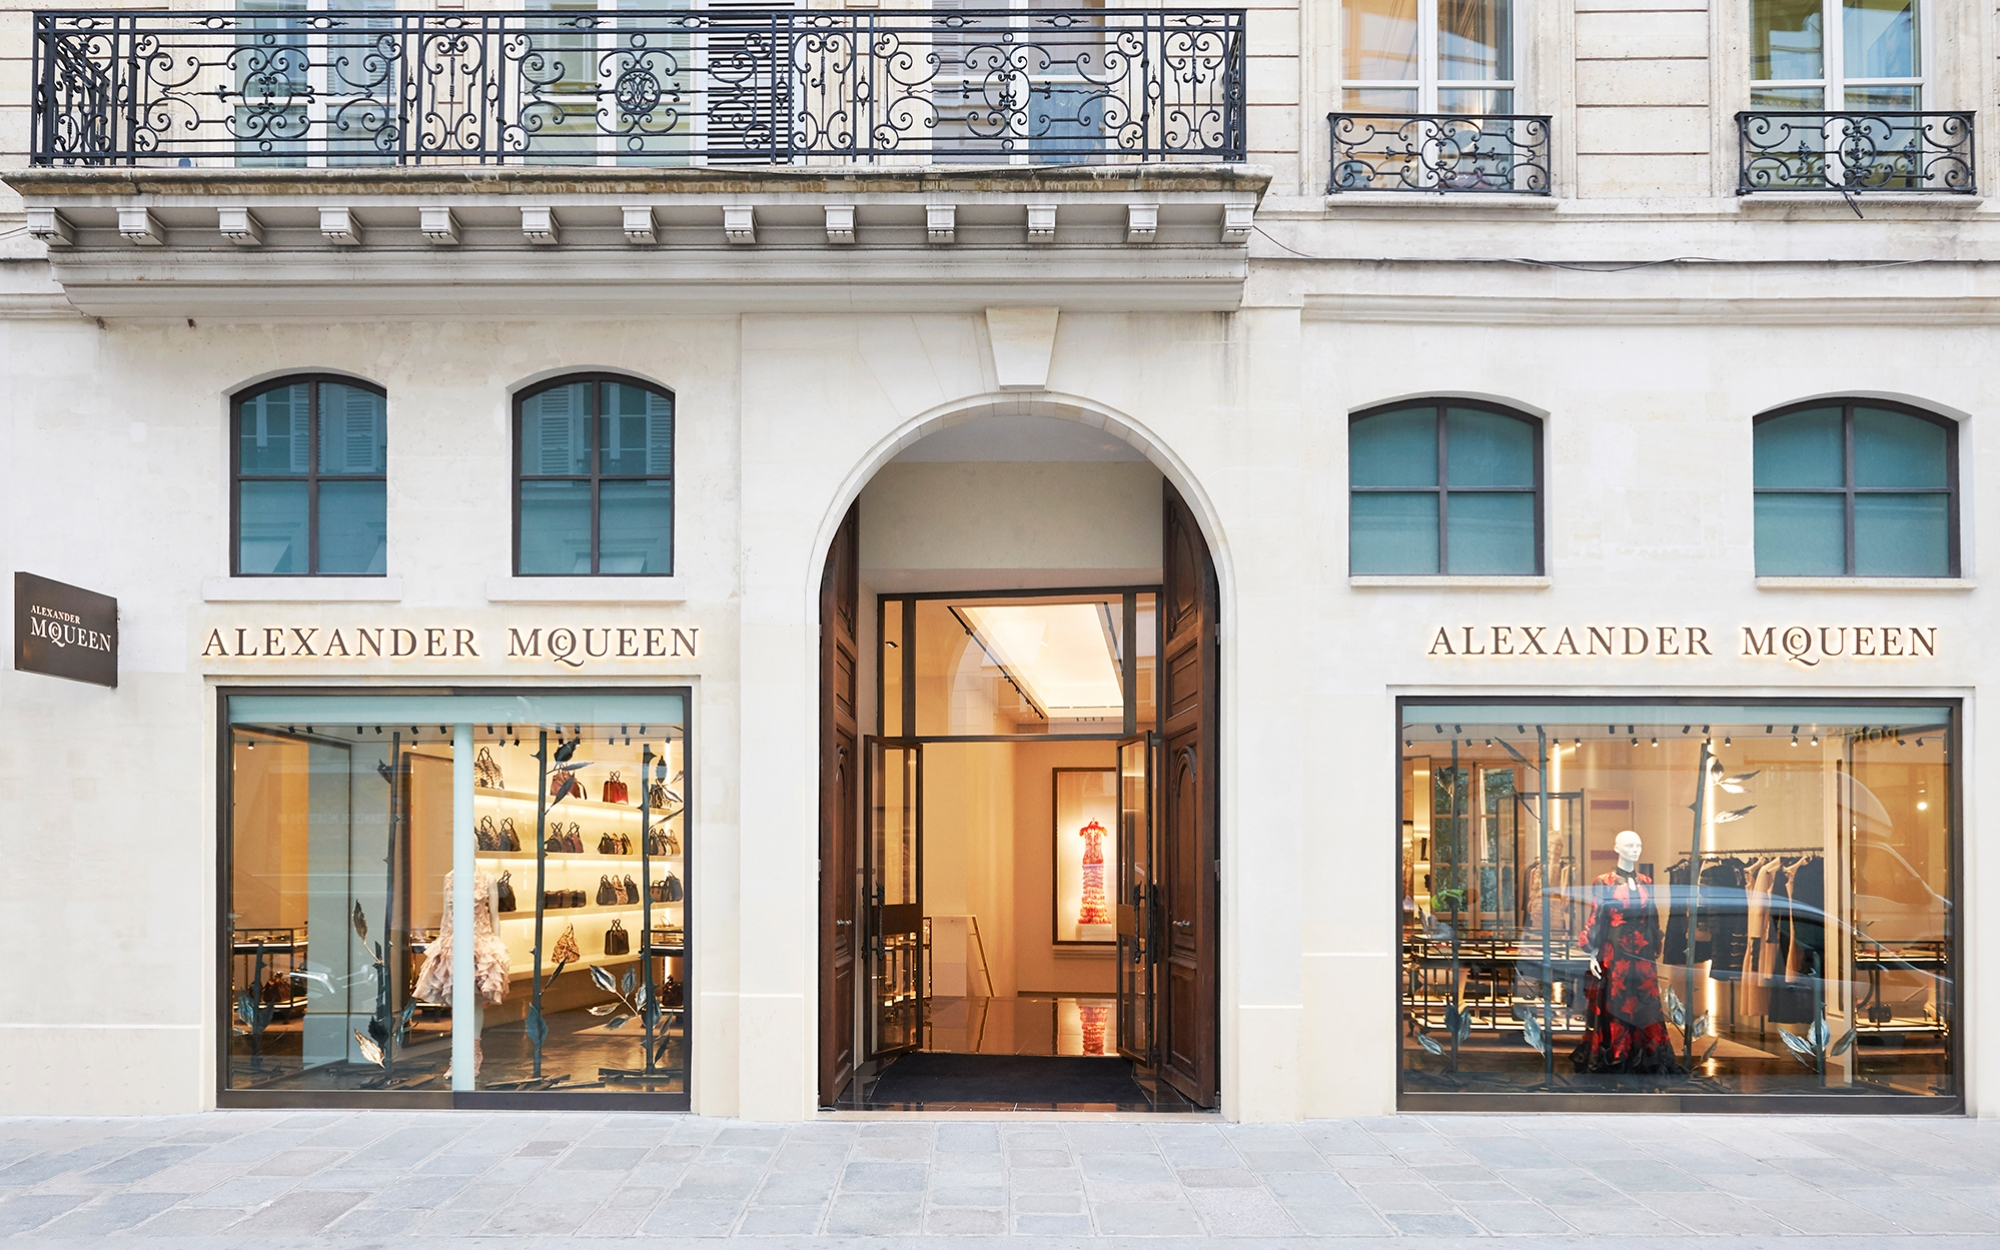 Alexander mcqueen 39 s paris boutique wins design award pursuitist - Boutique michelin paris ...